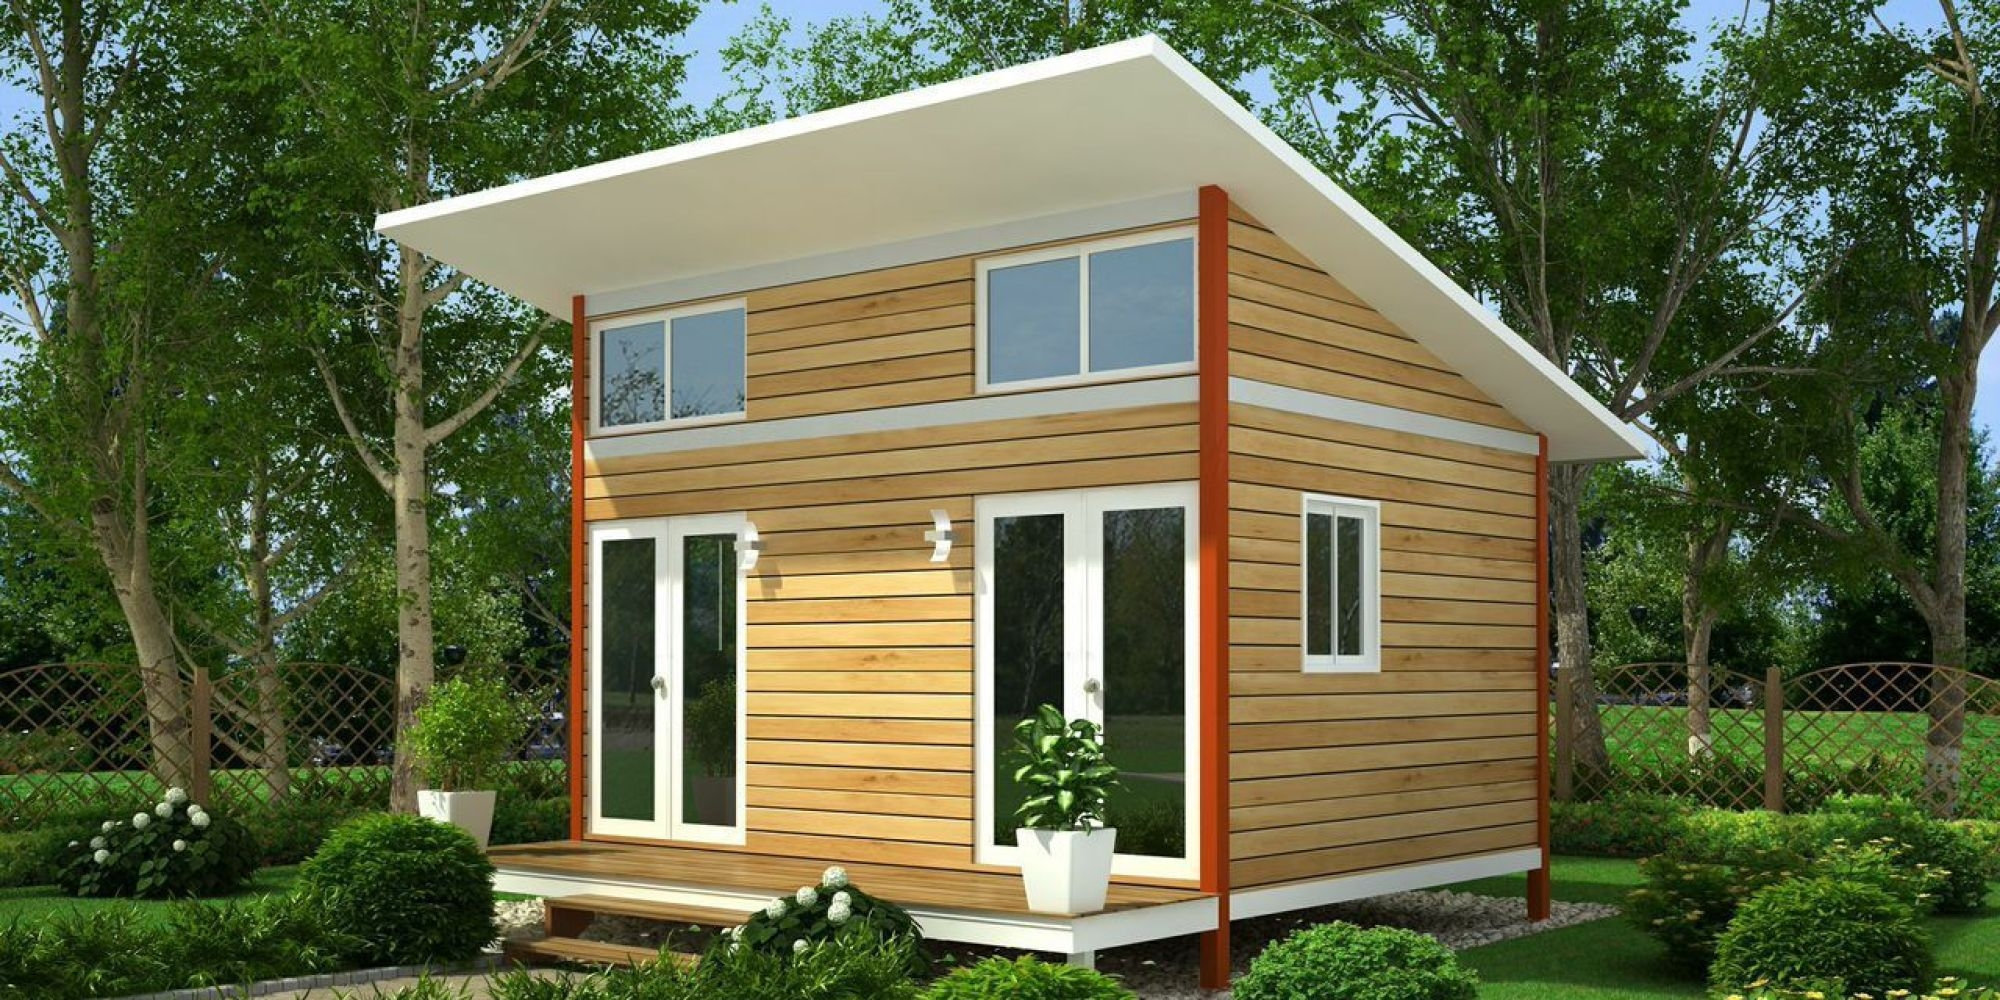 o-TINY-HOMES-PORTLAND-facebook.jpg